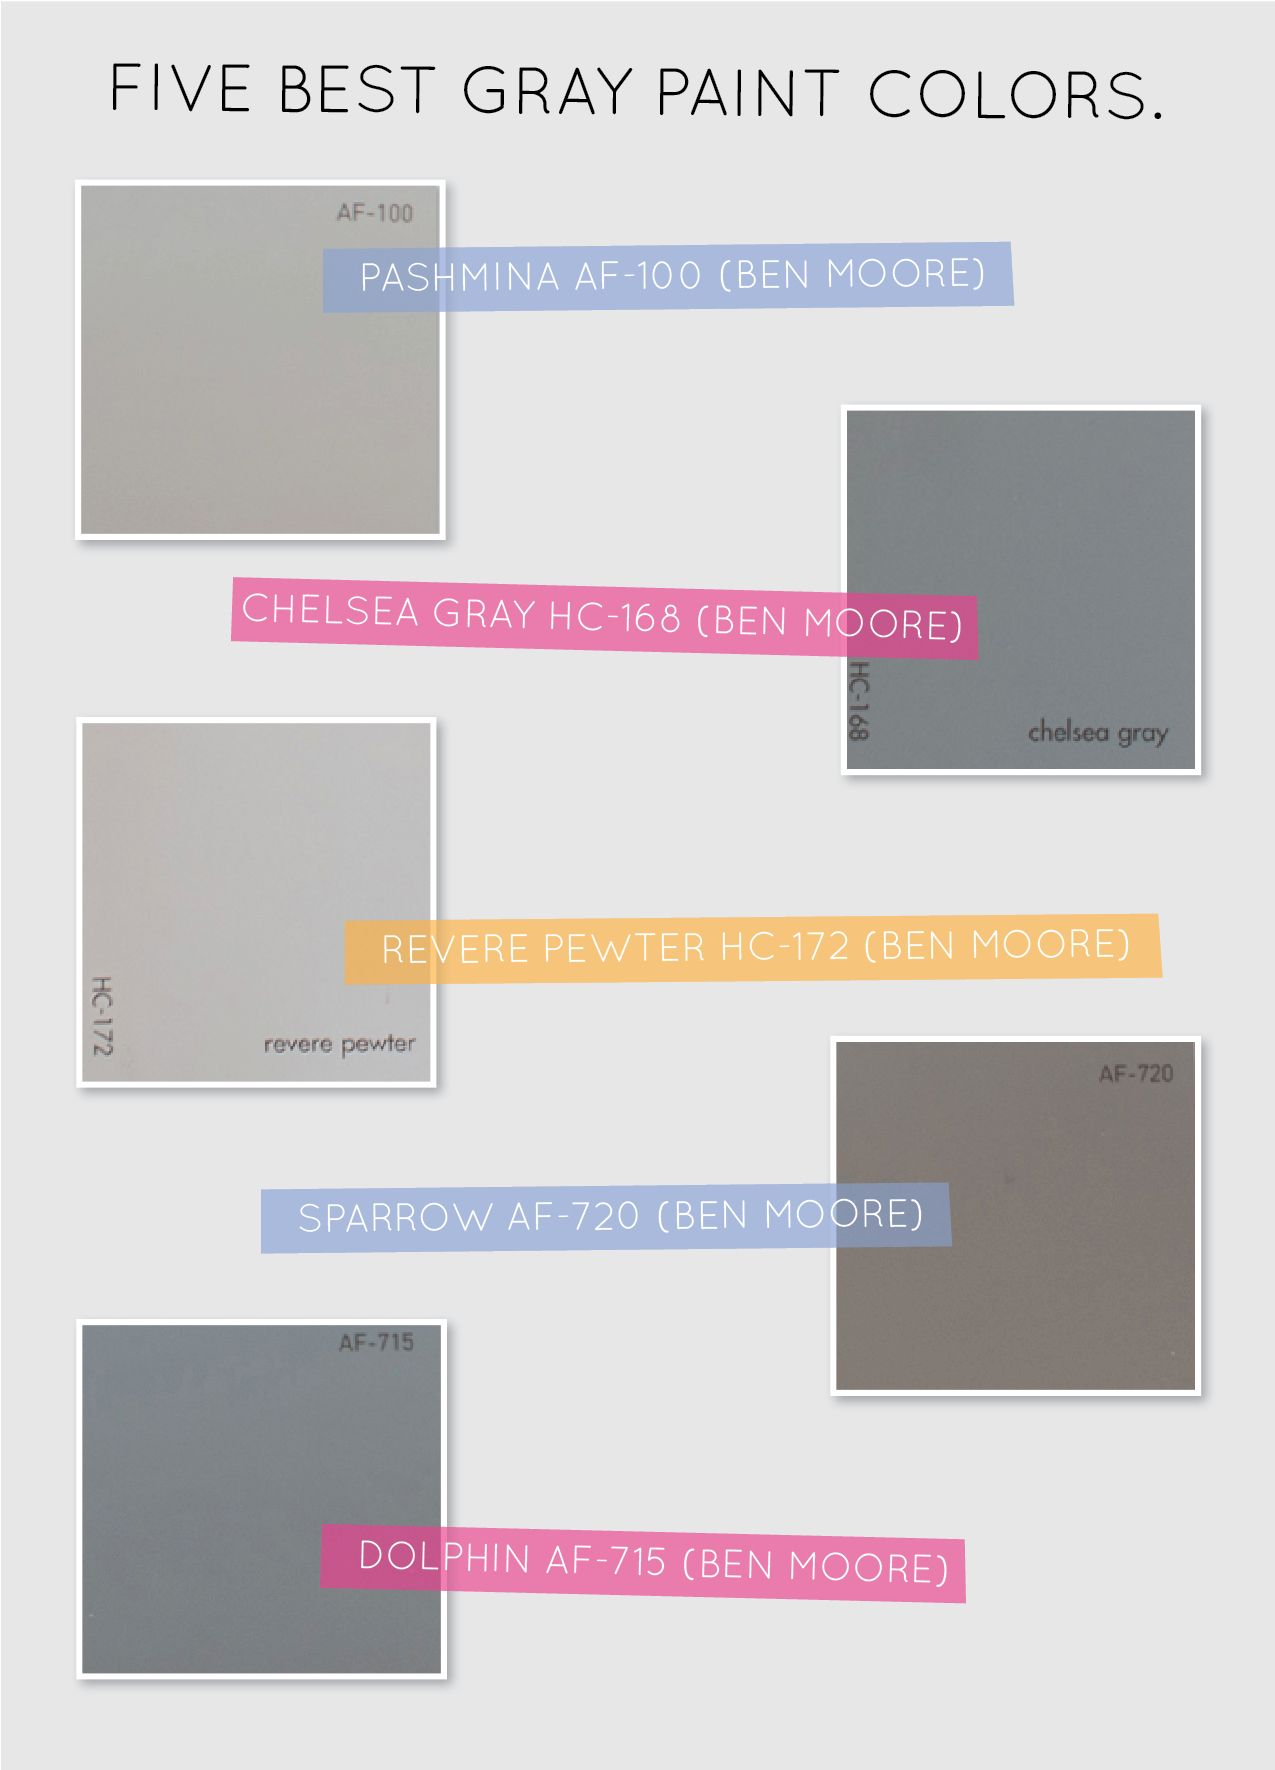 5 Best Gray Paint Colors To Choose From On Aliceandlois